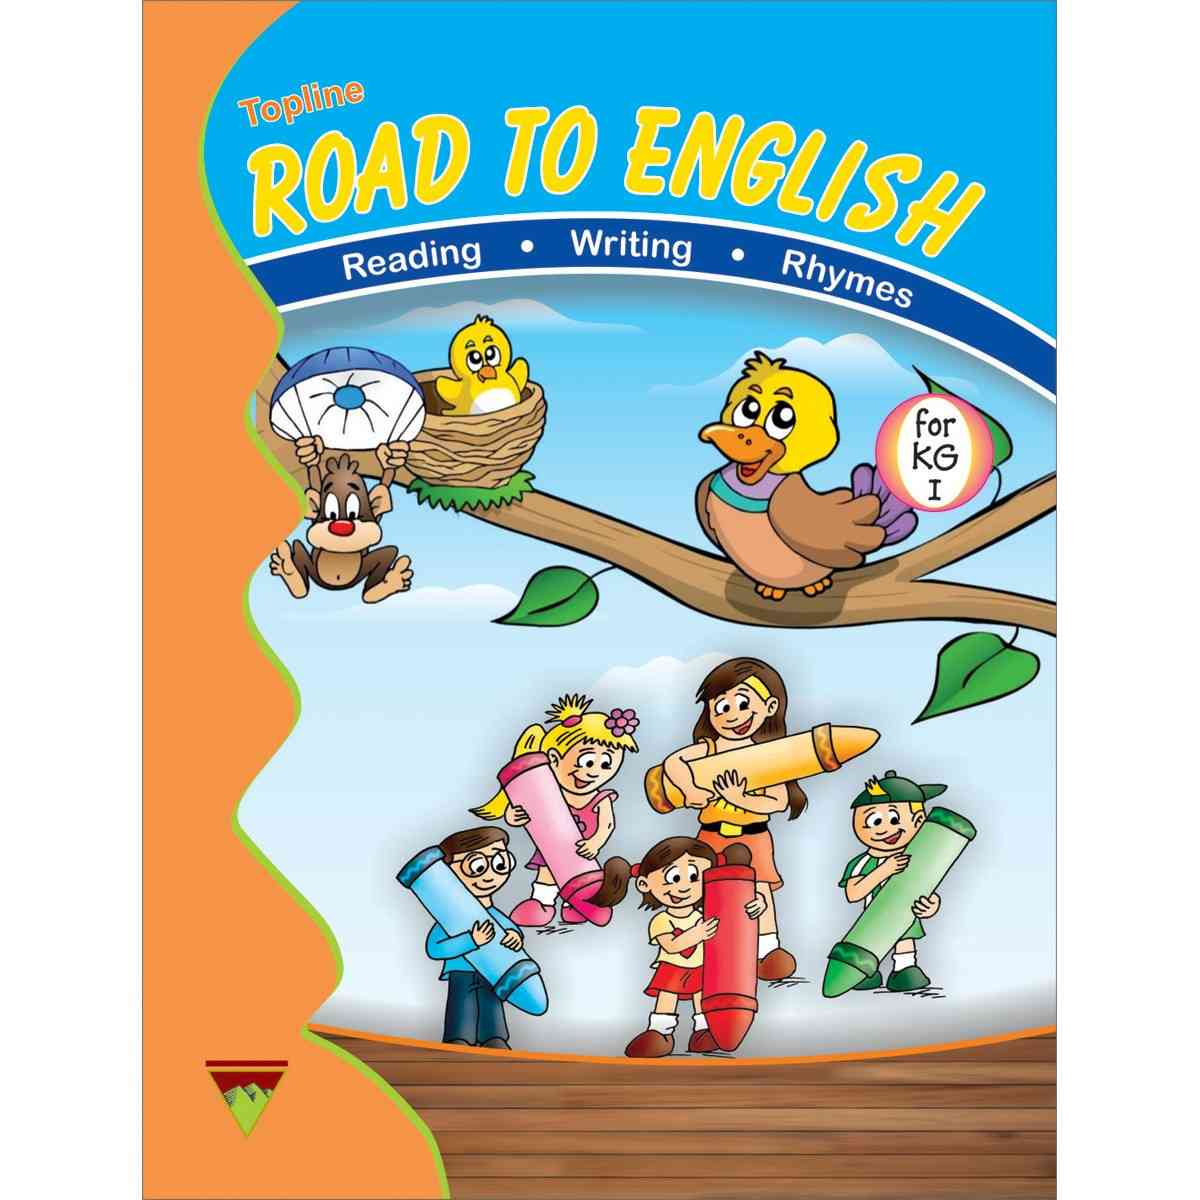 Road To English For KG 1